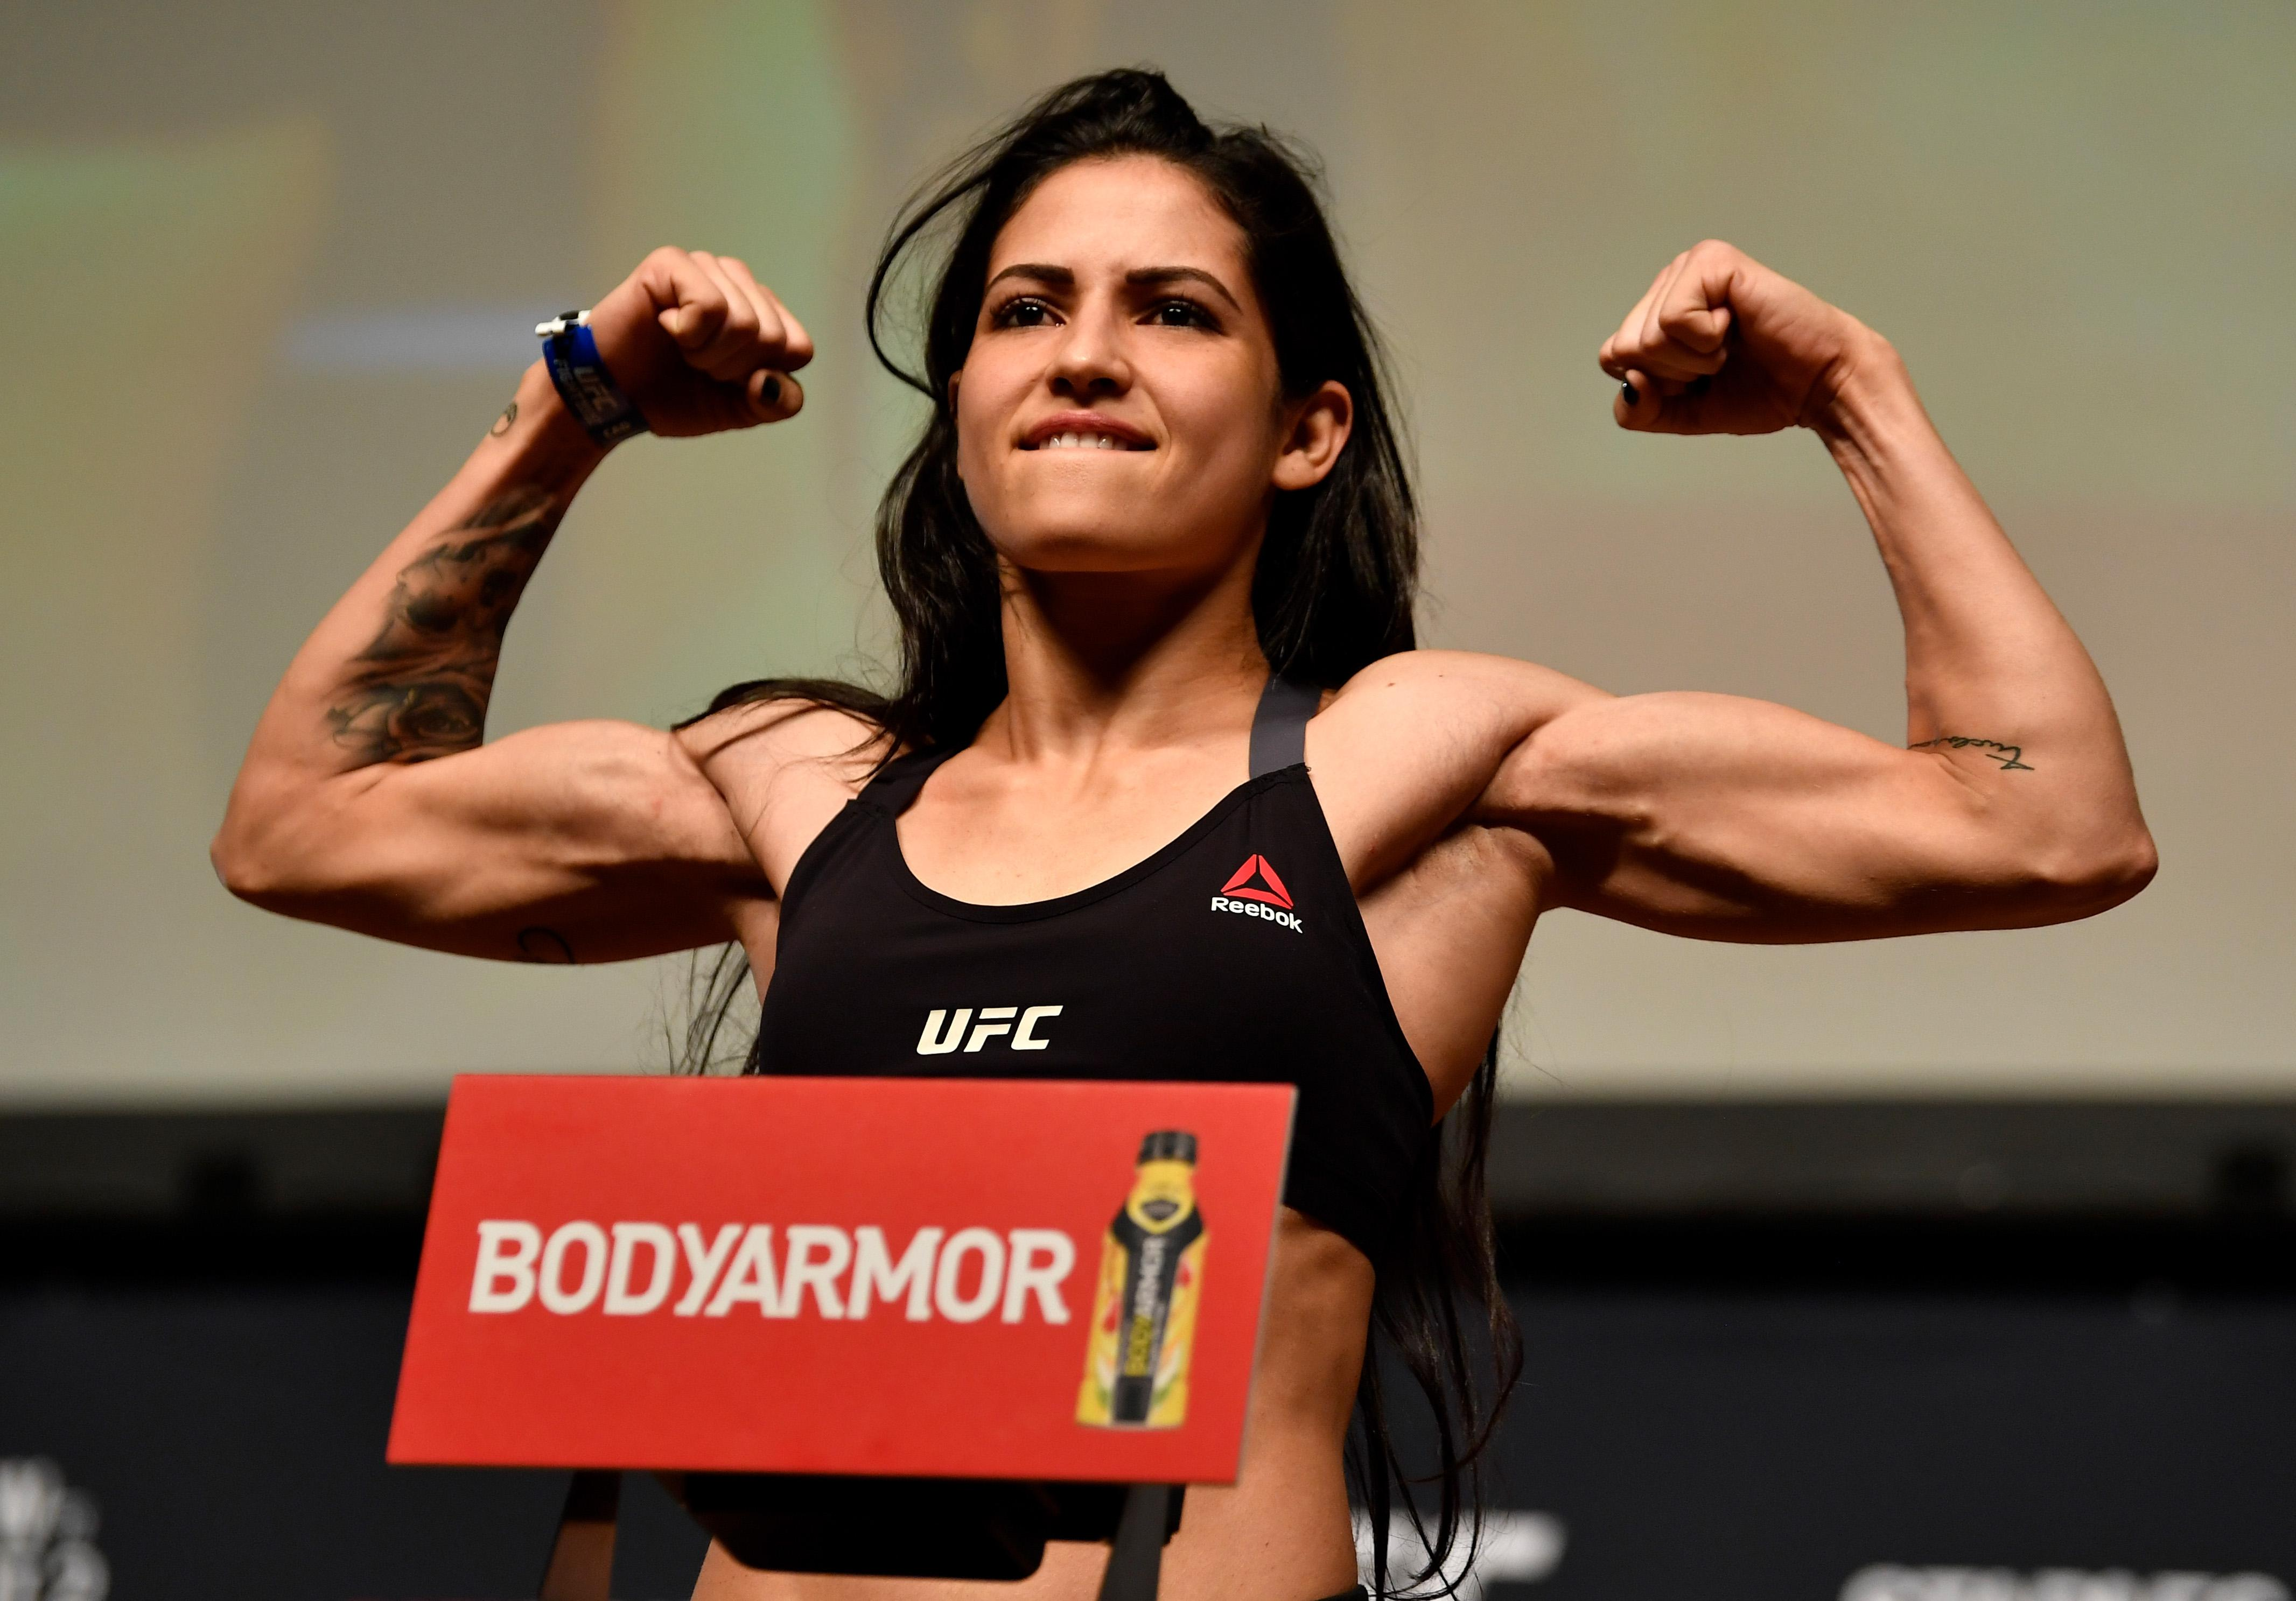 UFC star Polyana Viana has a professional record of 10-2